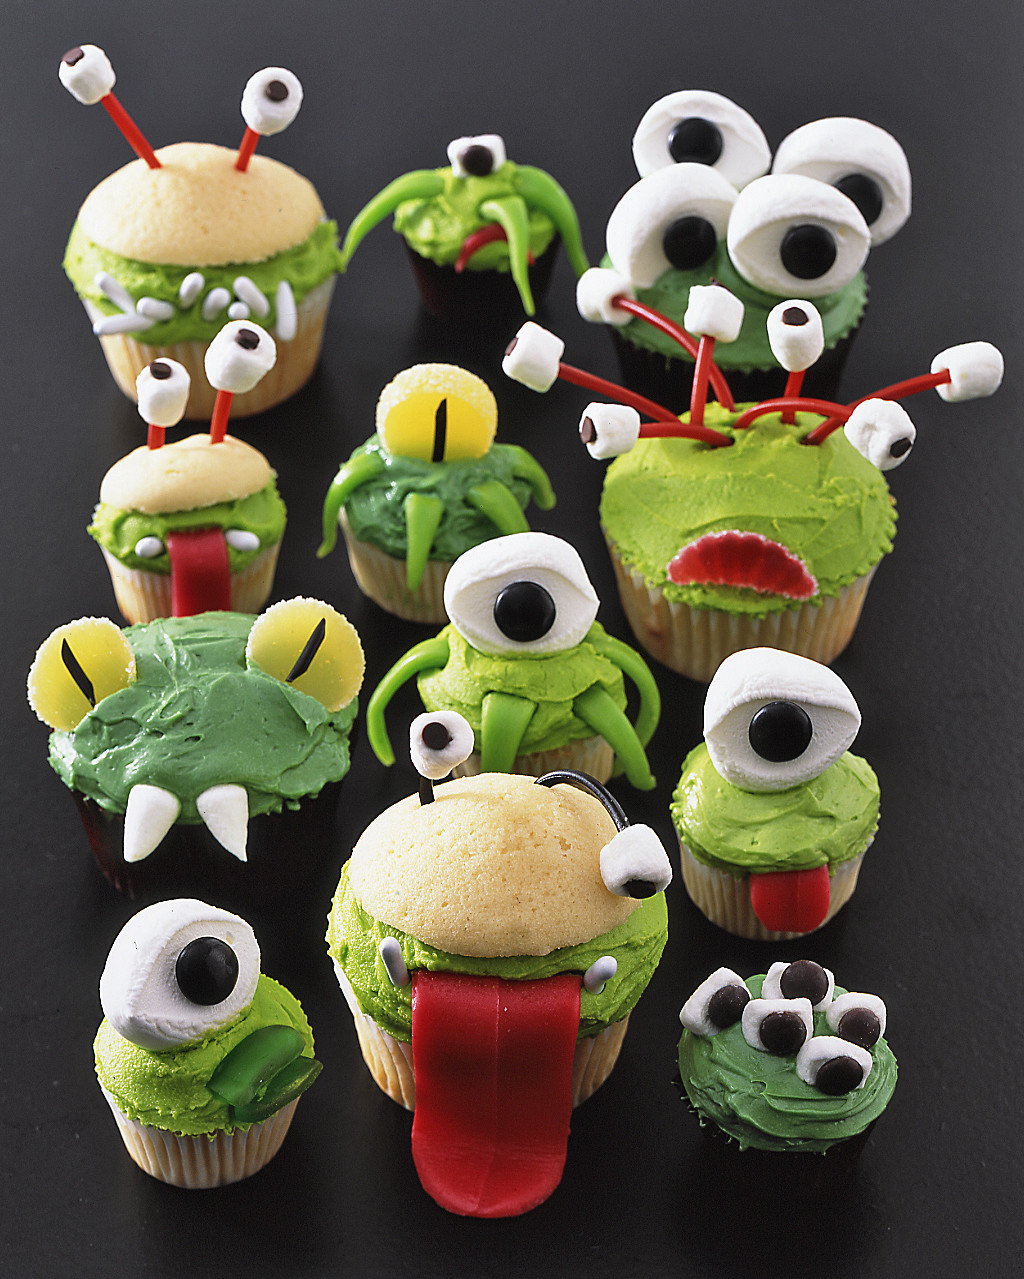 Let your imaginations (and fears) run wild this Halloween. We're serving up bewildering and straight up bizarre Halloween cupcake recipes for a kid-friendly party or a grown-up bash. From monsters to creepy crawlers and things that come alive, you can decorate these cupcakes in a way that's totally terrifying. When it comes to our favorite black and orange holiday, we've got more than a few tricks up our sleeves.If you're throwing a Halloween party for kids, a cupcake decorating station is an activity that will keep them occupied for hours (and give them the jitters, too). Start with a base recipe for your Halloween cupcakes—basic vanilla, chocolate, chocolate chip cookie, and red velvet (just to name a few!). Next, fill the cupcakes with a spooky surprise filling, like orange curd, chocolate mousse, or lighter peanut butter frosting. For an added layer of fun, don't reveal what's on the inside and wait for guests to take a bewitching bite.Finally, set out bowls with candy galore for decorating. With these frightful cupcakes, you'll need lots of black licorice, green and black food coloring, taffy, jelly beans, gummy rings, marshmallows, and mini chocolate chips. Kids will cackle with delight as they get to create their very own Frankenstein with sugary candy and brightly colored frosting. Things may get messy, but that's half the fun.Use the recipes in this collection for spooky inspiration and you'll be amazed at the Halloween creations kids will come up with. This is a day no one should skip the treats (though there will certainly be plenty of tricks, too). Be consumed by the eerie and edible, the flavorful and the frightful. Our Halloween cupcake recipes will satisfy everyone's dark side.